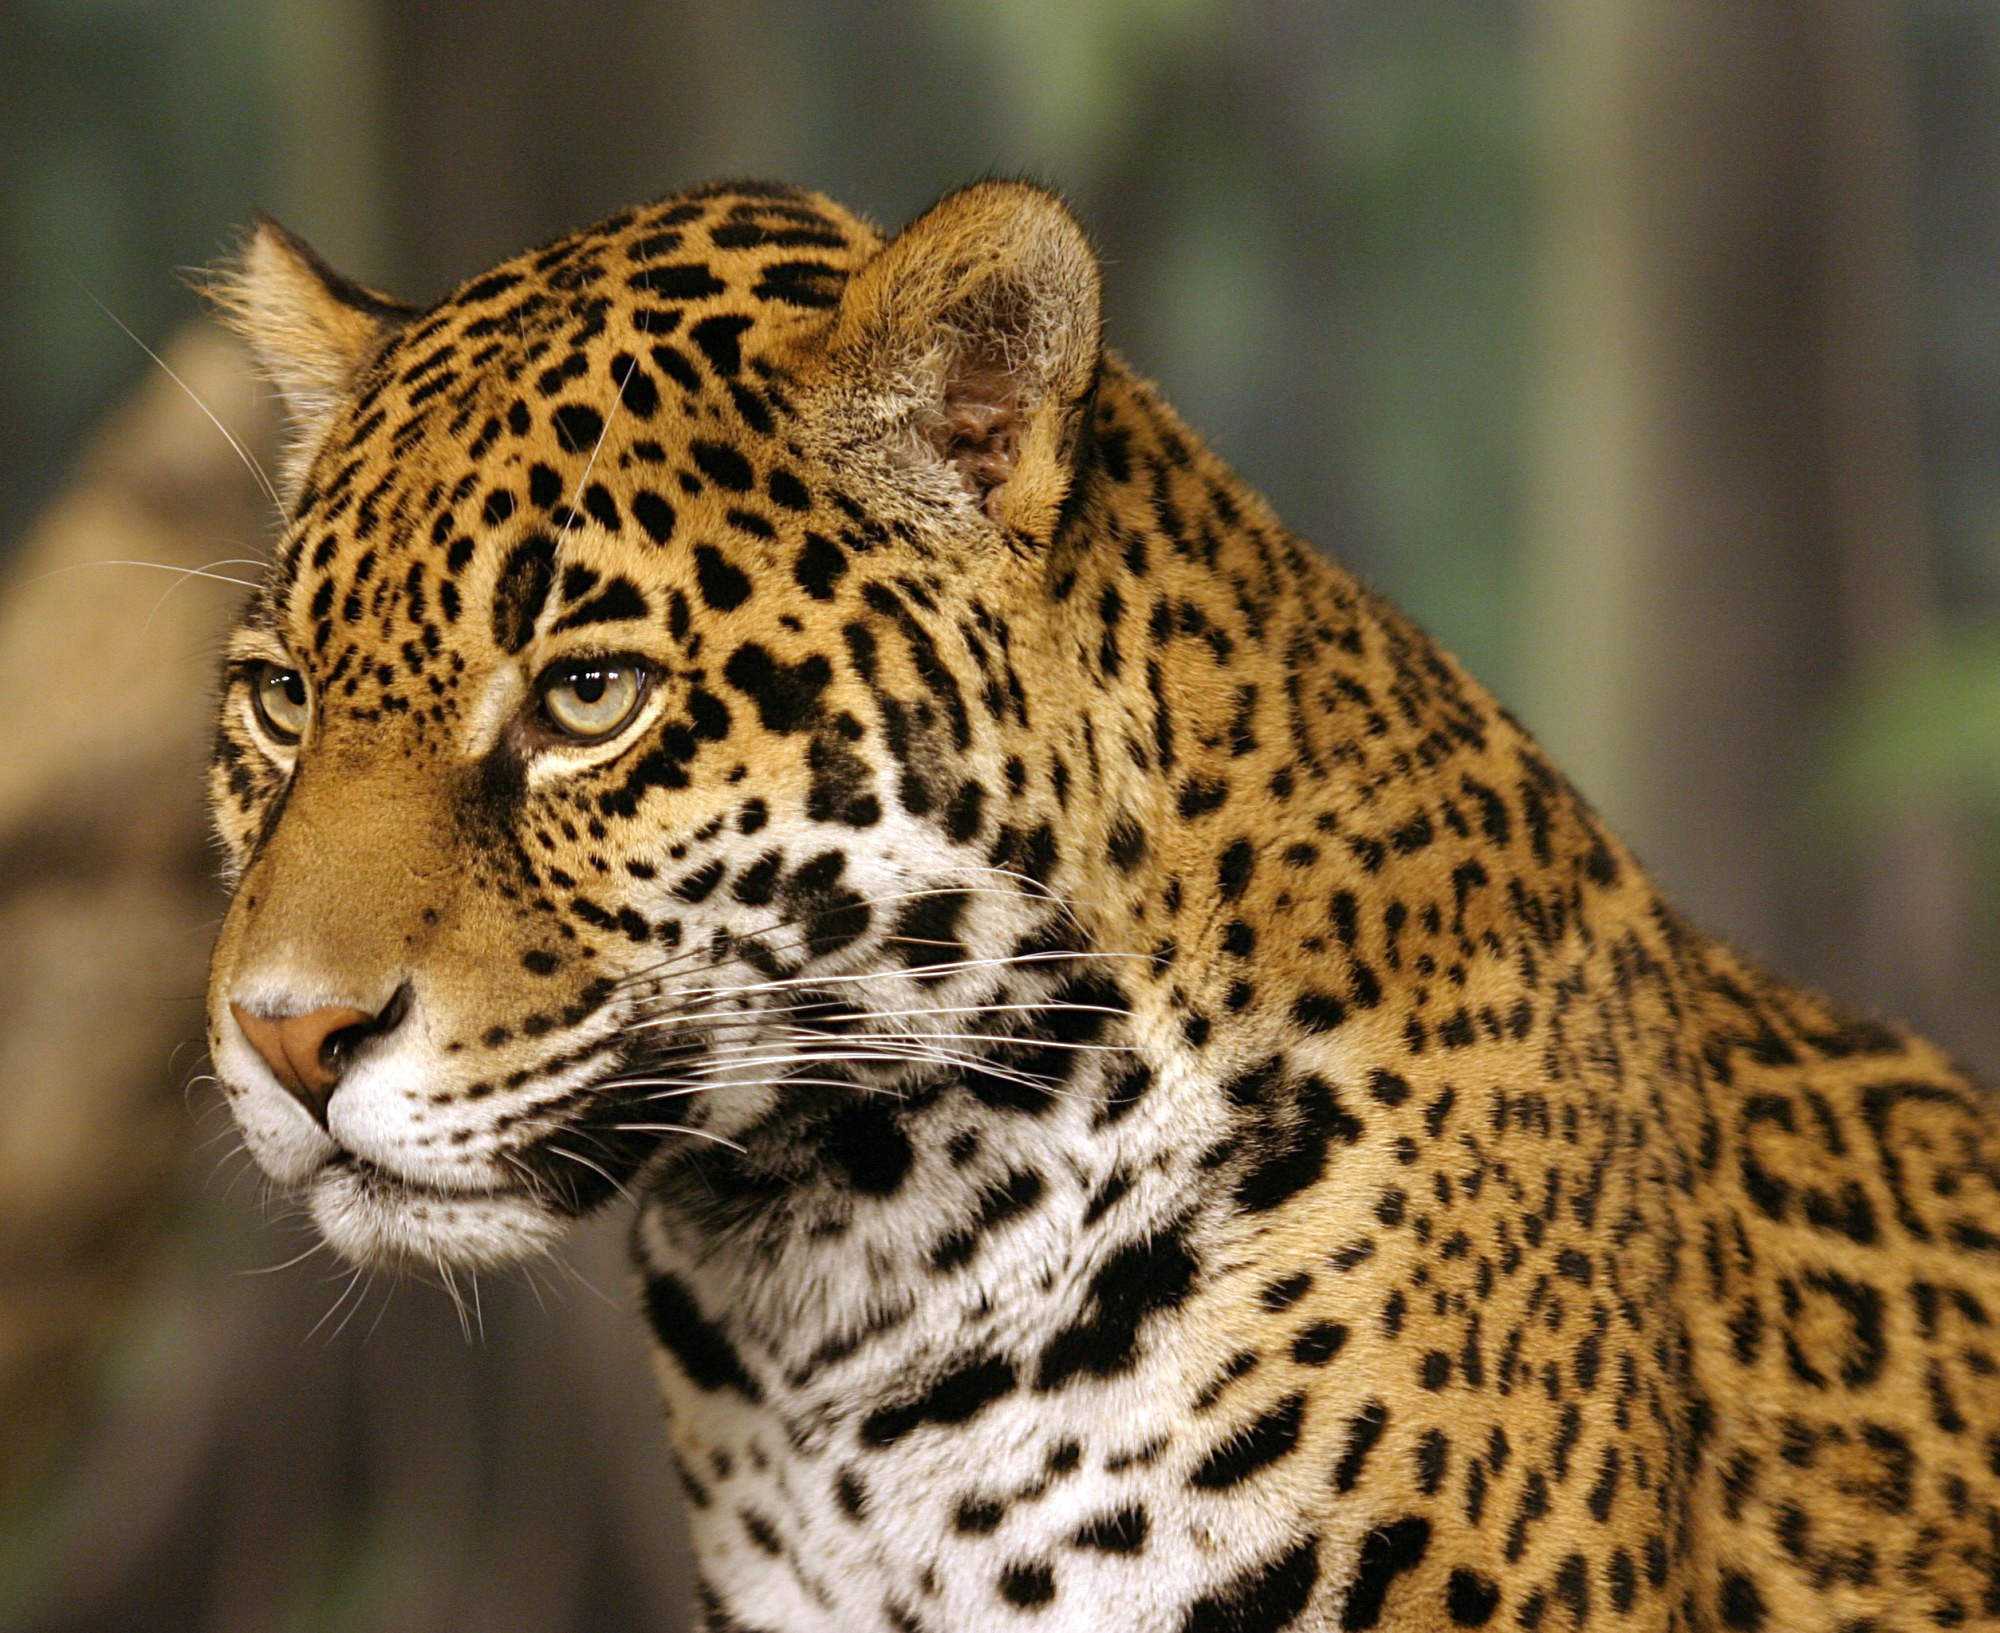 http://upload.wikimedia.org/wikipedia/commons/c/c9/Jaguar_head_shot-edit2.jpg